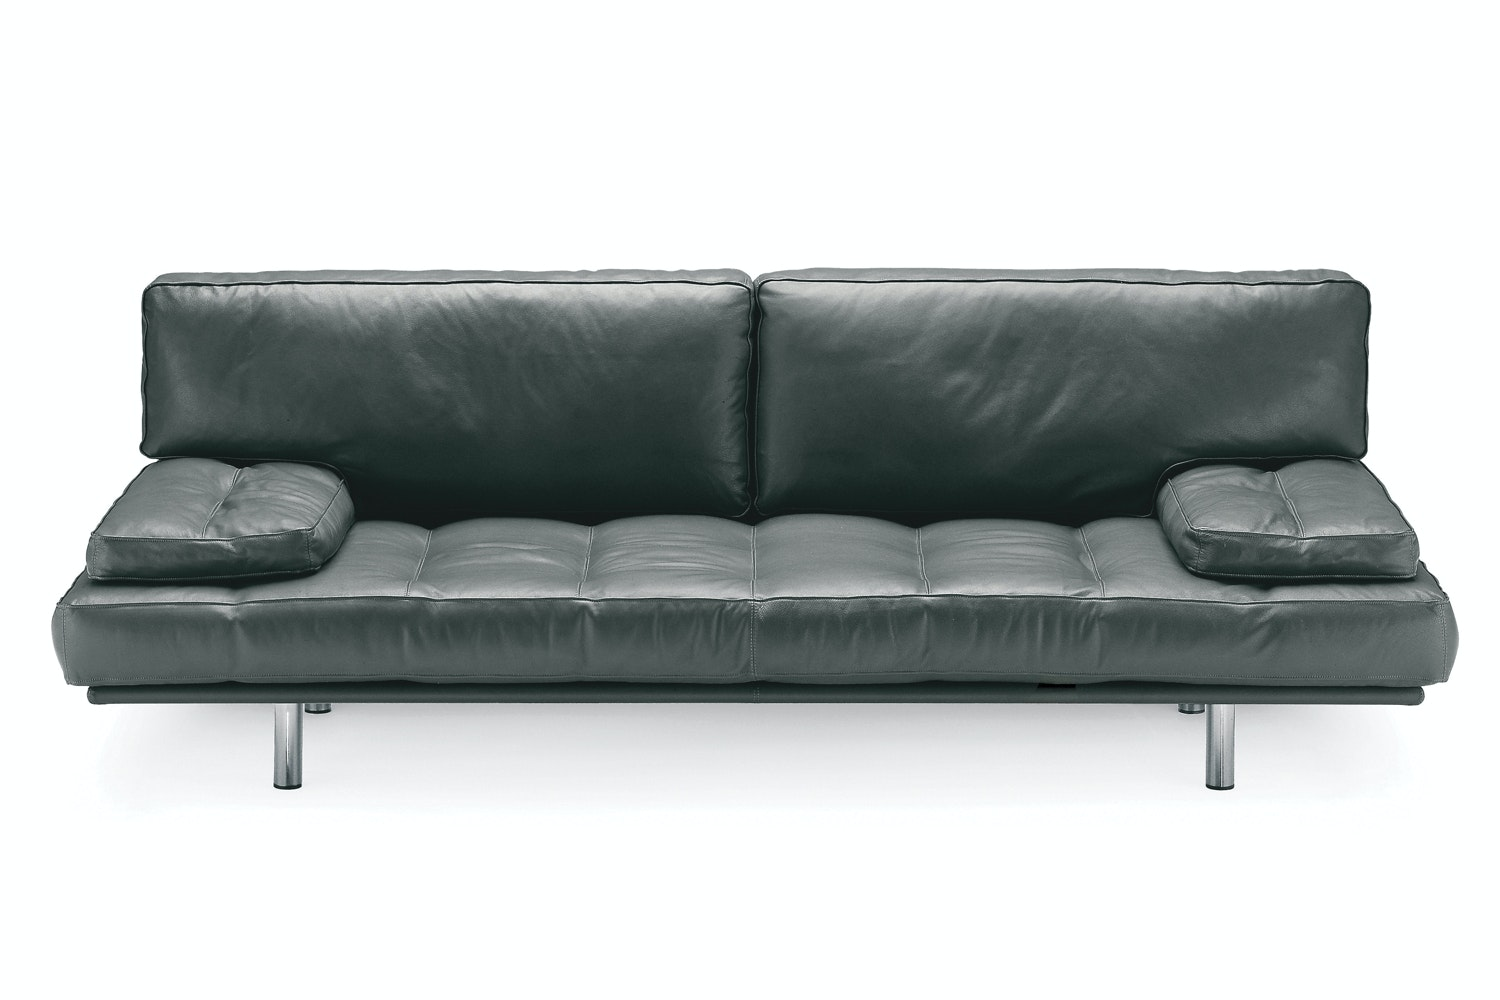 Milano Sofa by De Pas, D'Urbino, Lomazzi for Zanotta